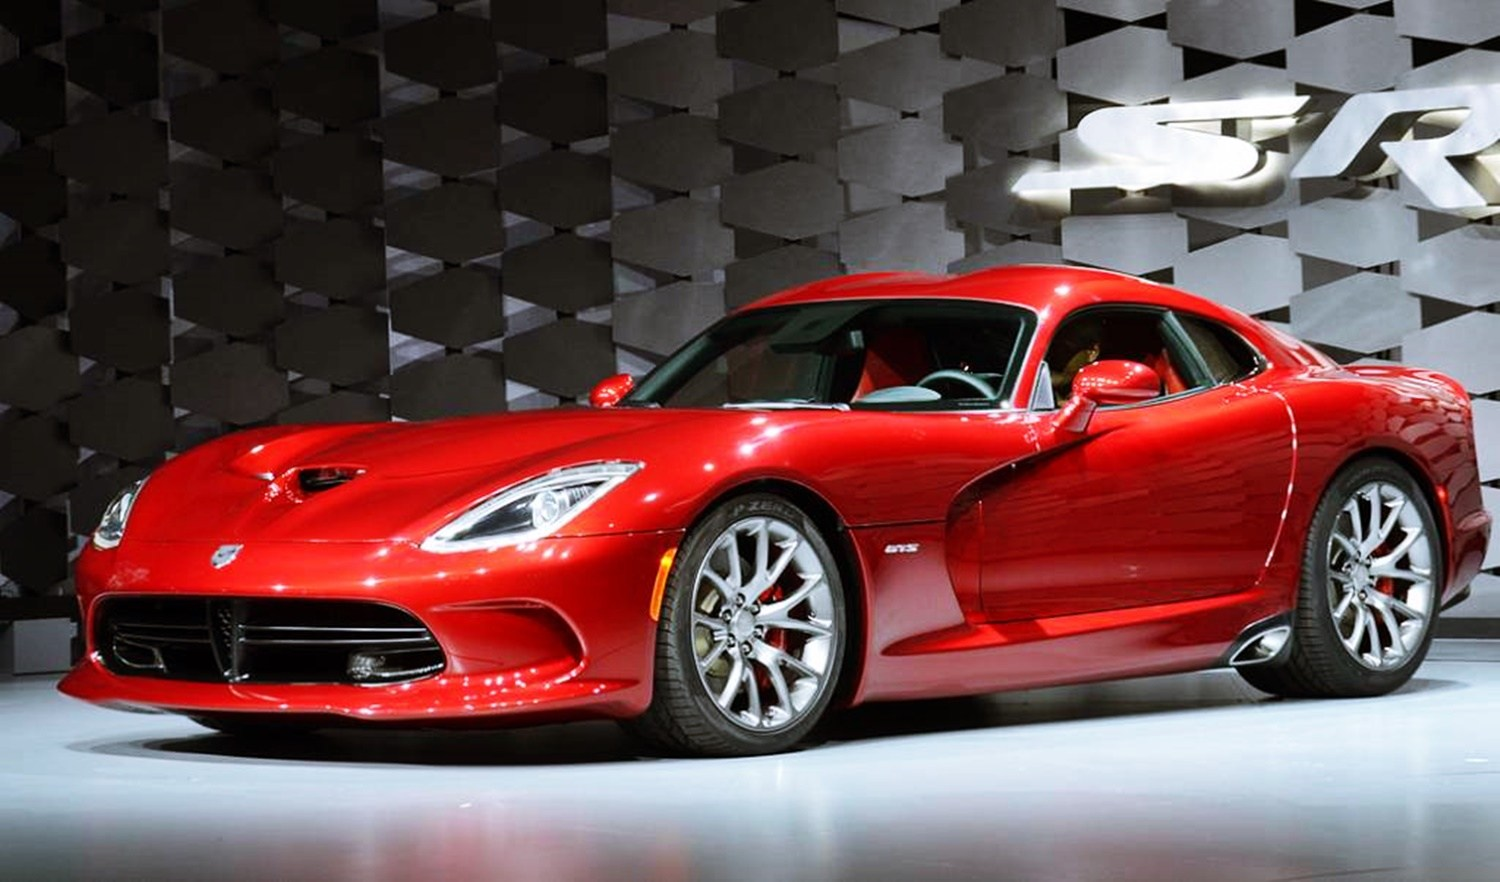 67 Best Review 2020 Dodge Viper News Exterior and Interior for 2020 Dodge Viper News